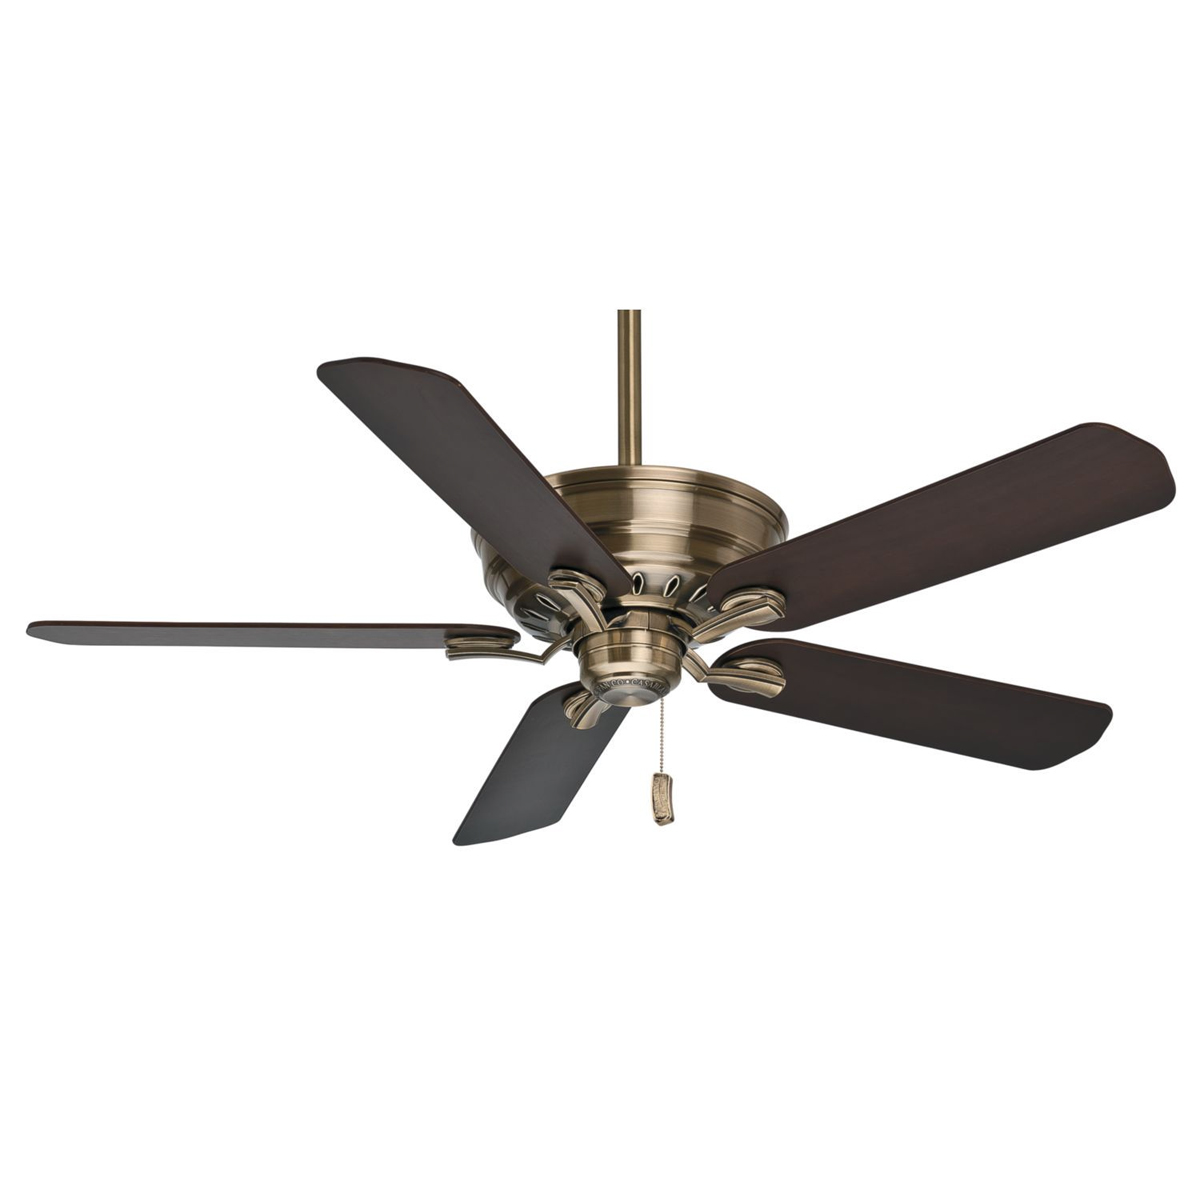 Casablanca Fan Company 54116 54 Inch Ceiling Fan In Antique Brass